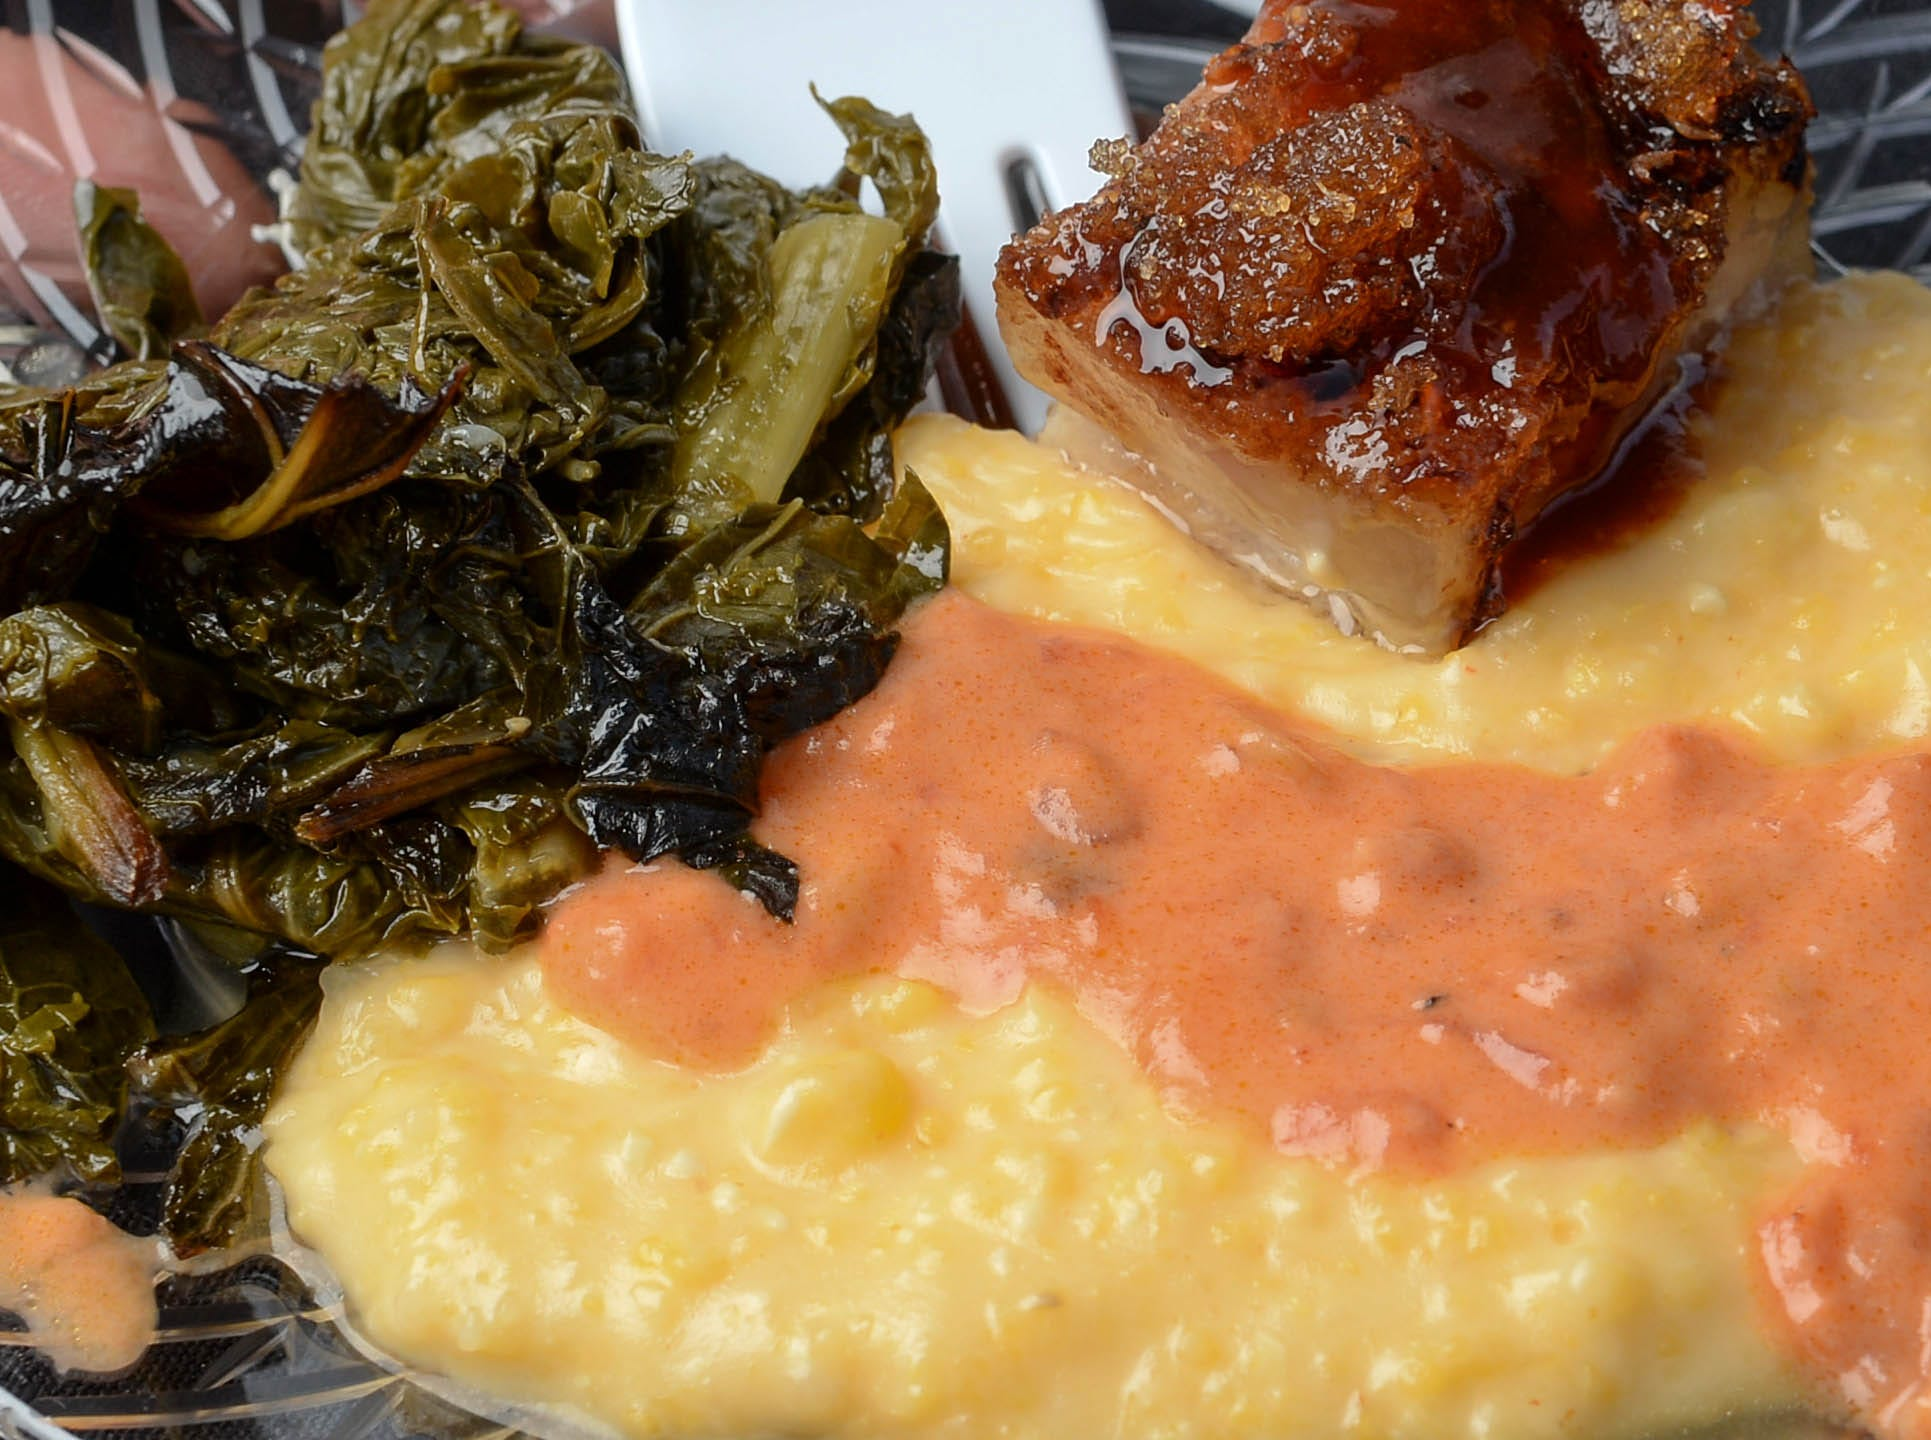 A sweet and smoky pork belly cheddar corn grits, tomato gravy and braised greens dish, a combination of Doolittle's and Greenbrier Farm at FreshTaste at Carolina Wren Park in downtown Anderson on Tuesday. The event showcases local food and emerging artists with special wine and craft beer tastings. The event is presented by the City of Anderson, with bluegrass music is by My Girl, My Whiskey, and Me!